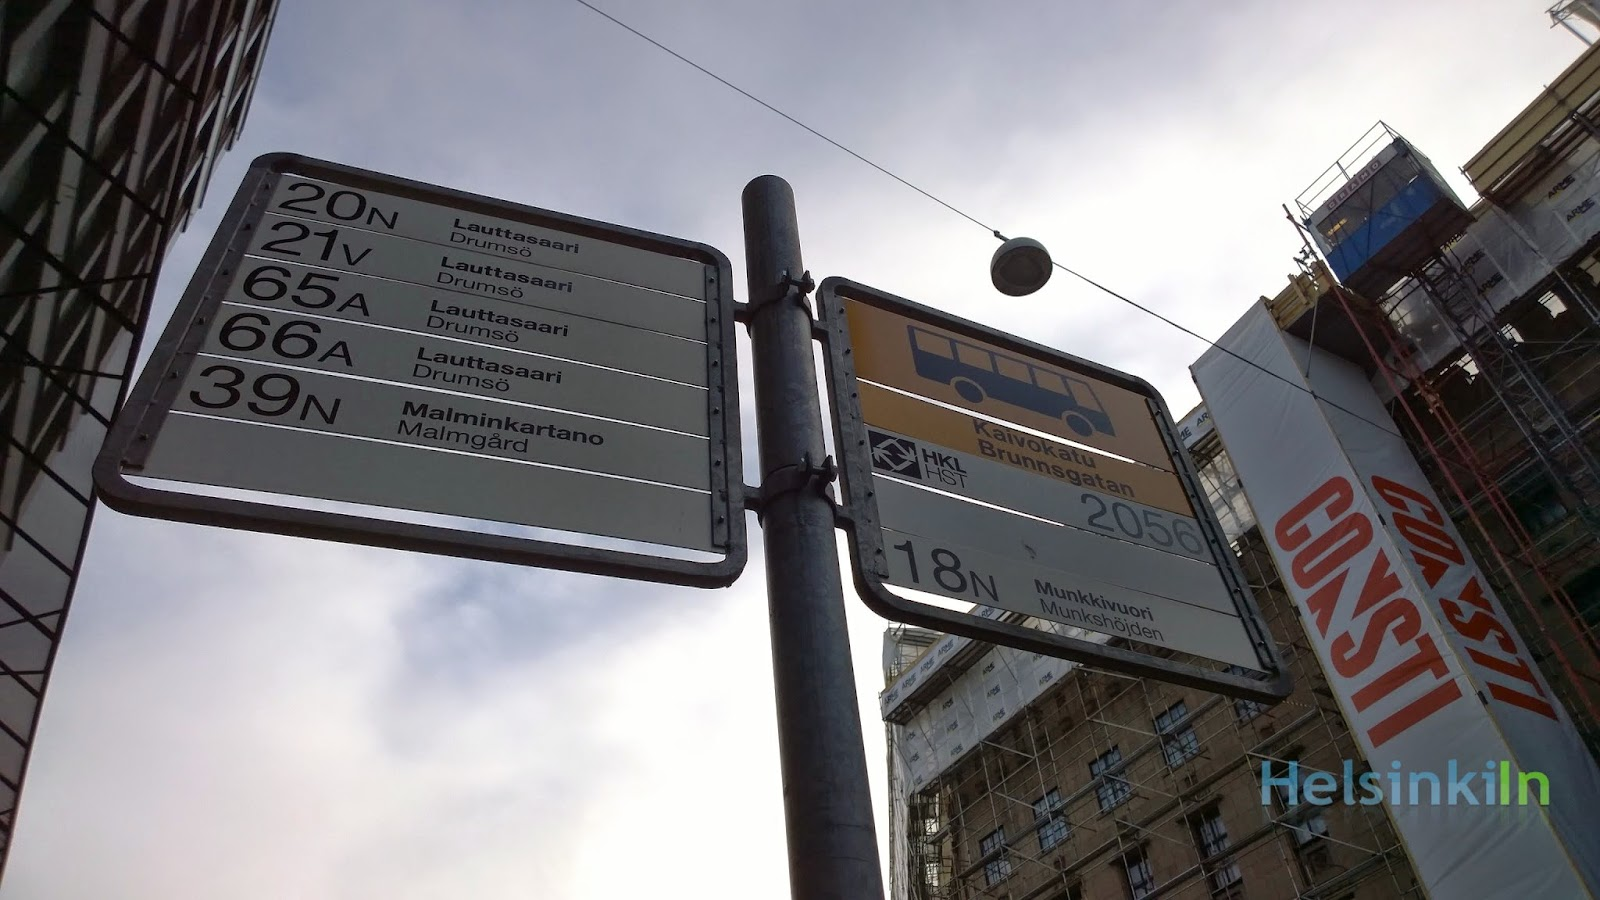 bus stop in the center of Helsinki